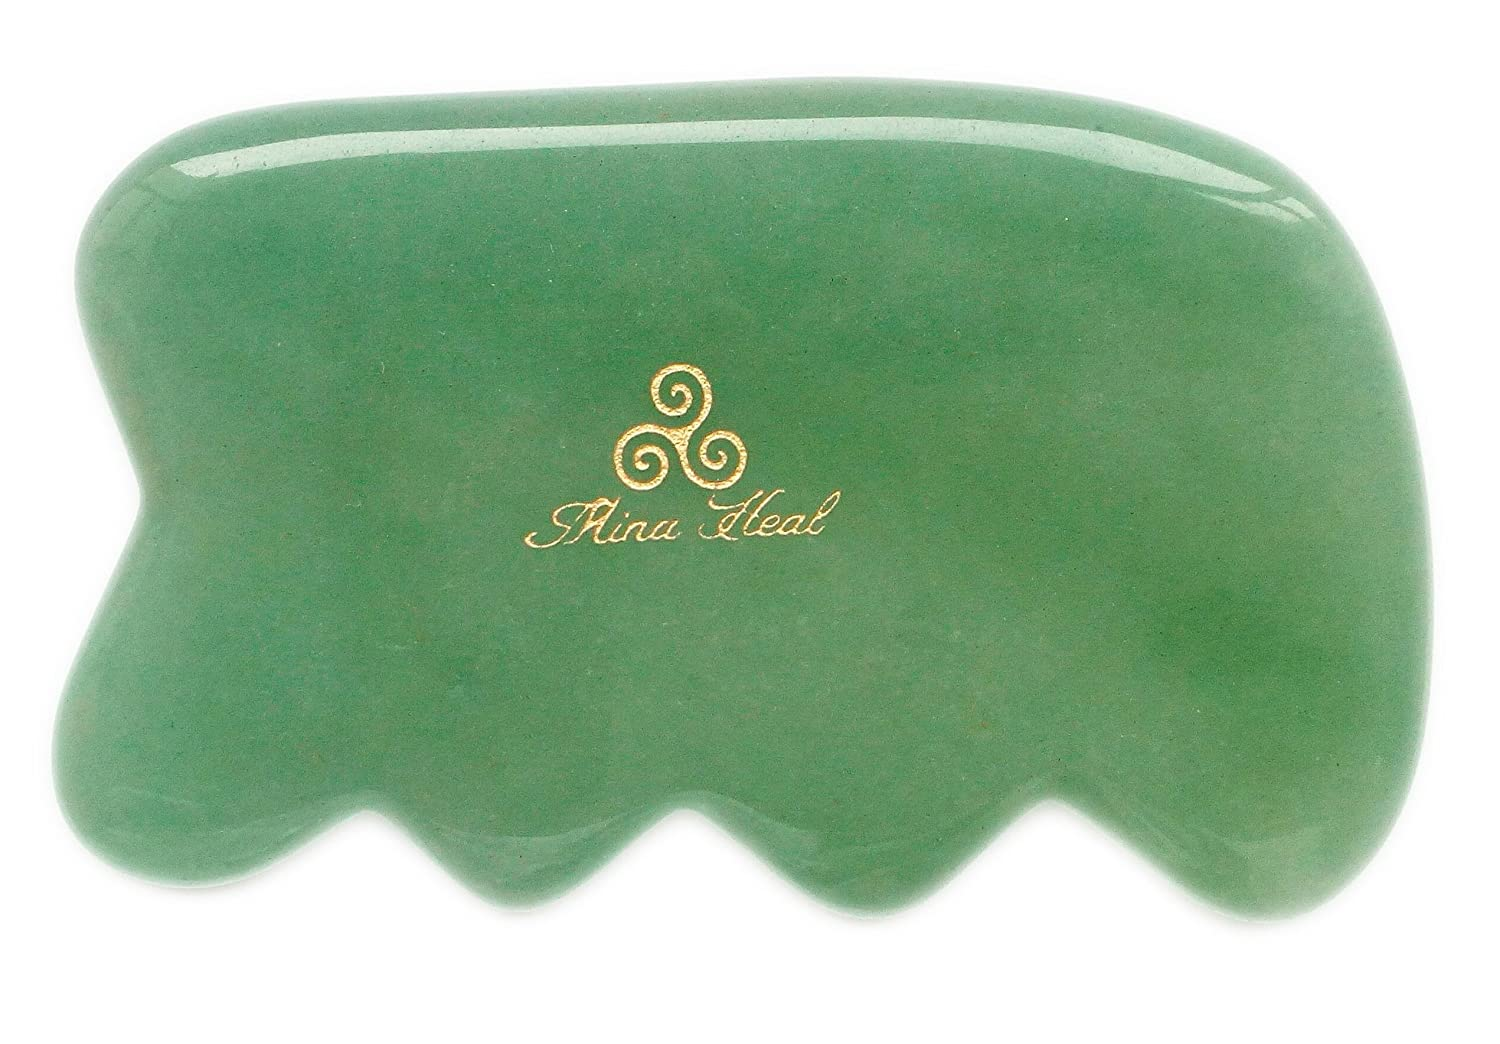 Massage Tool Made of Jade Stone, for Face Lifting, Anti-aging, Anti-wrinkles, Gua Sha Treatment: Amazon.es: Salud y cuidado personal